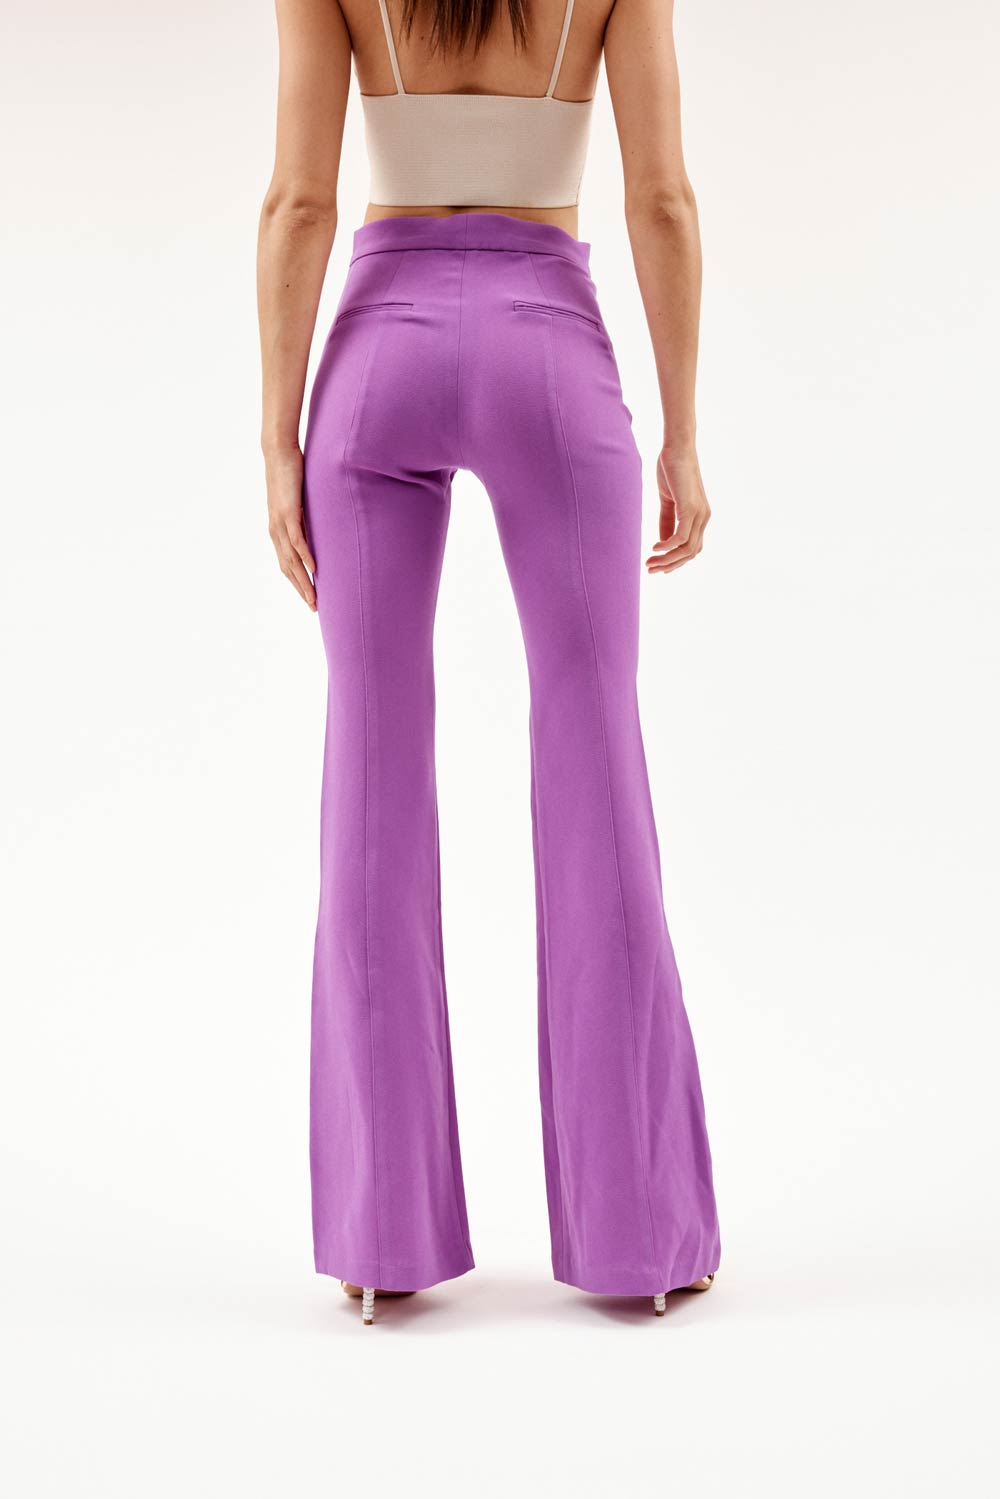 Rene Flared Purple Pants